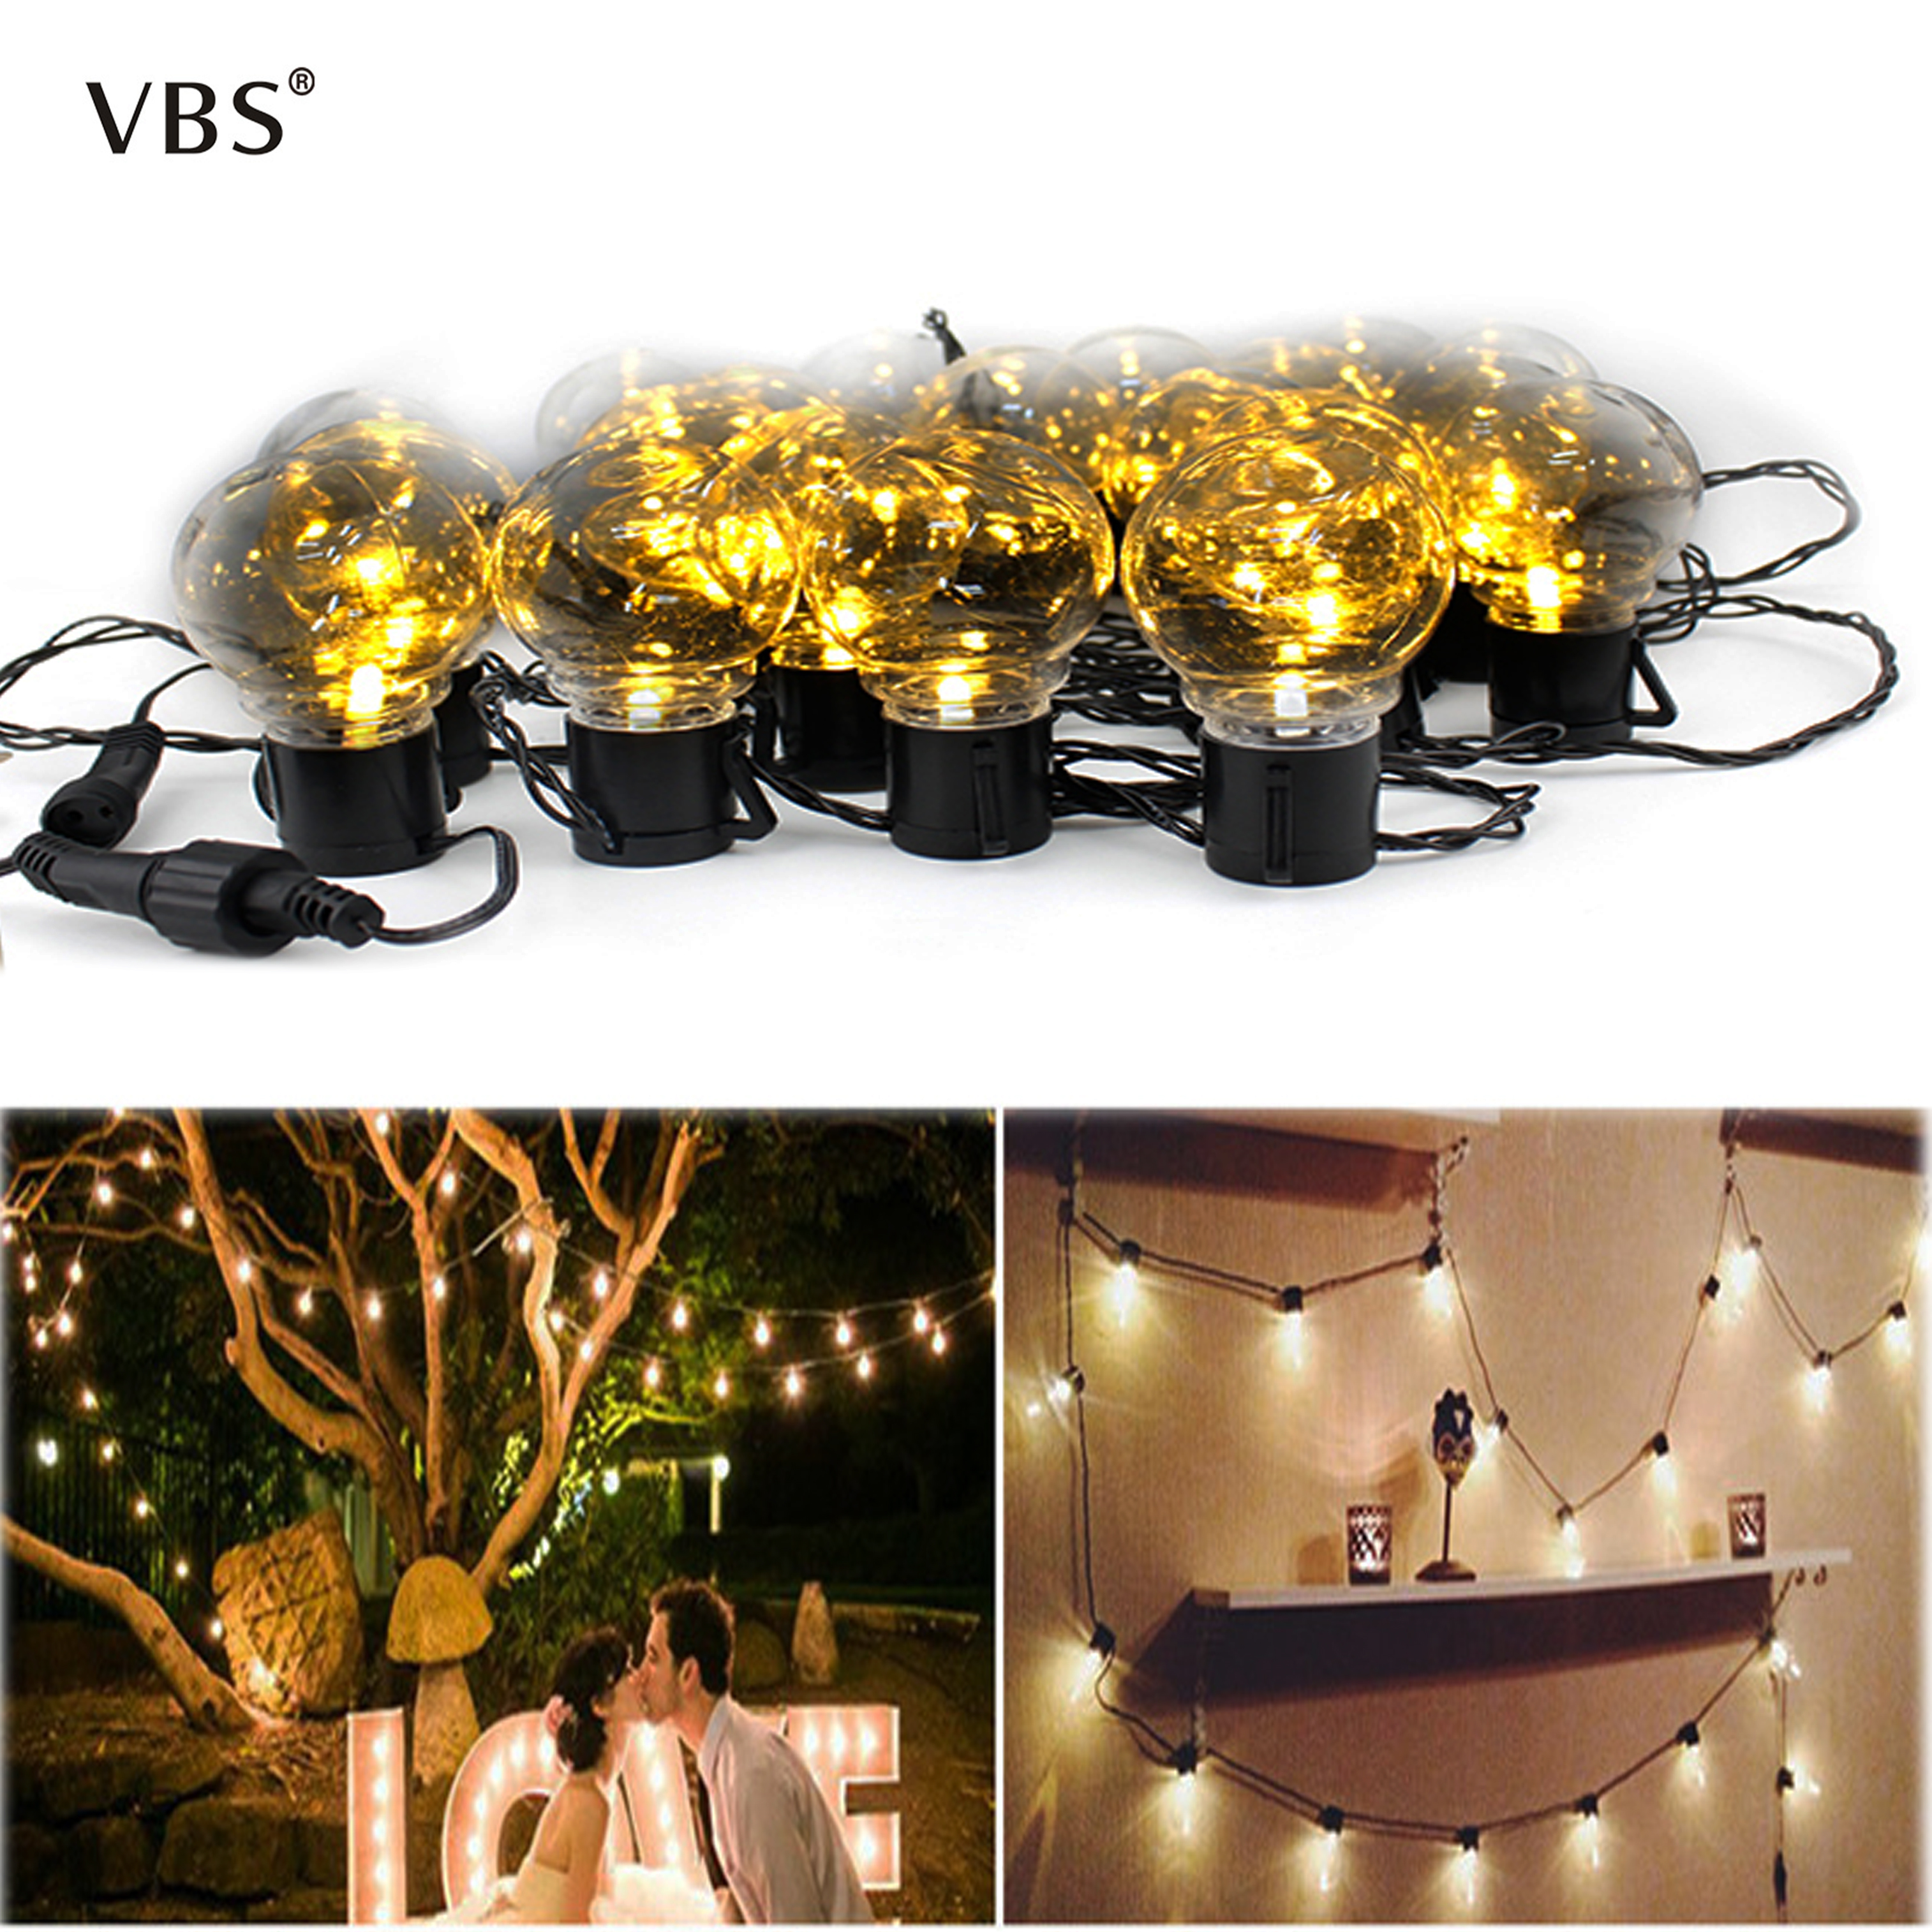 Holiday lighting LED Globe Bulb String light 220V Waterproof New Year garland Decoracion for indoor &outdoor christmas